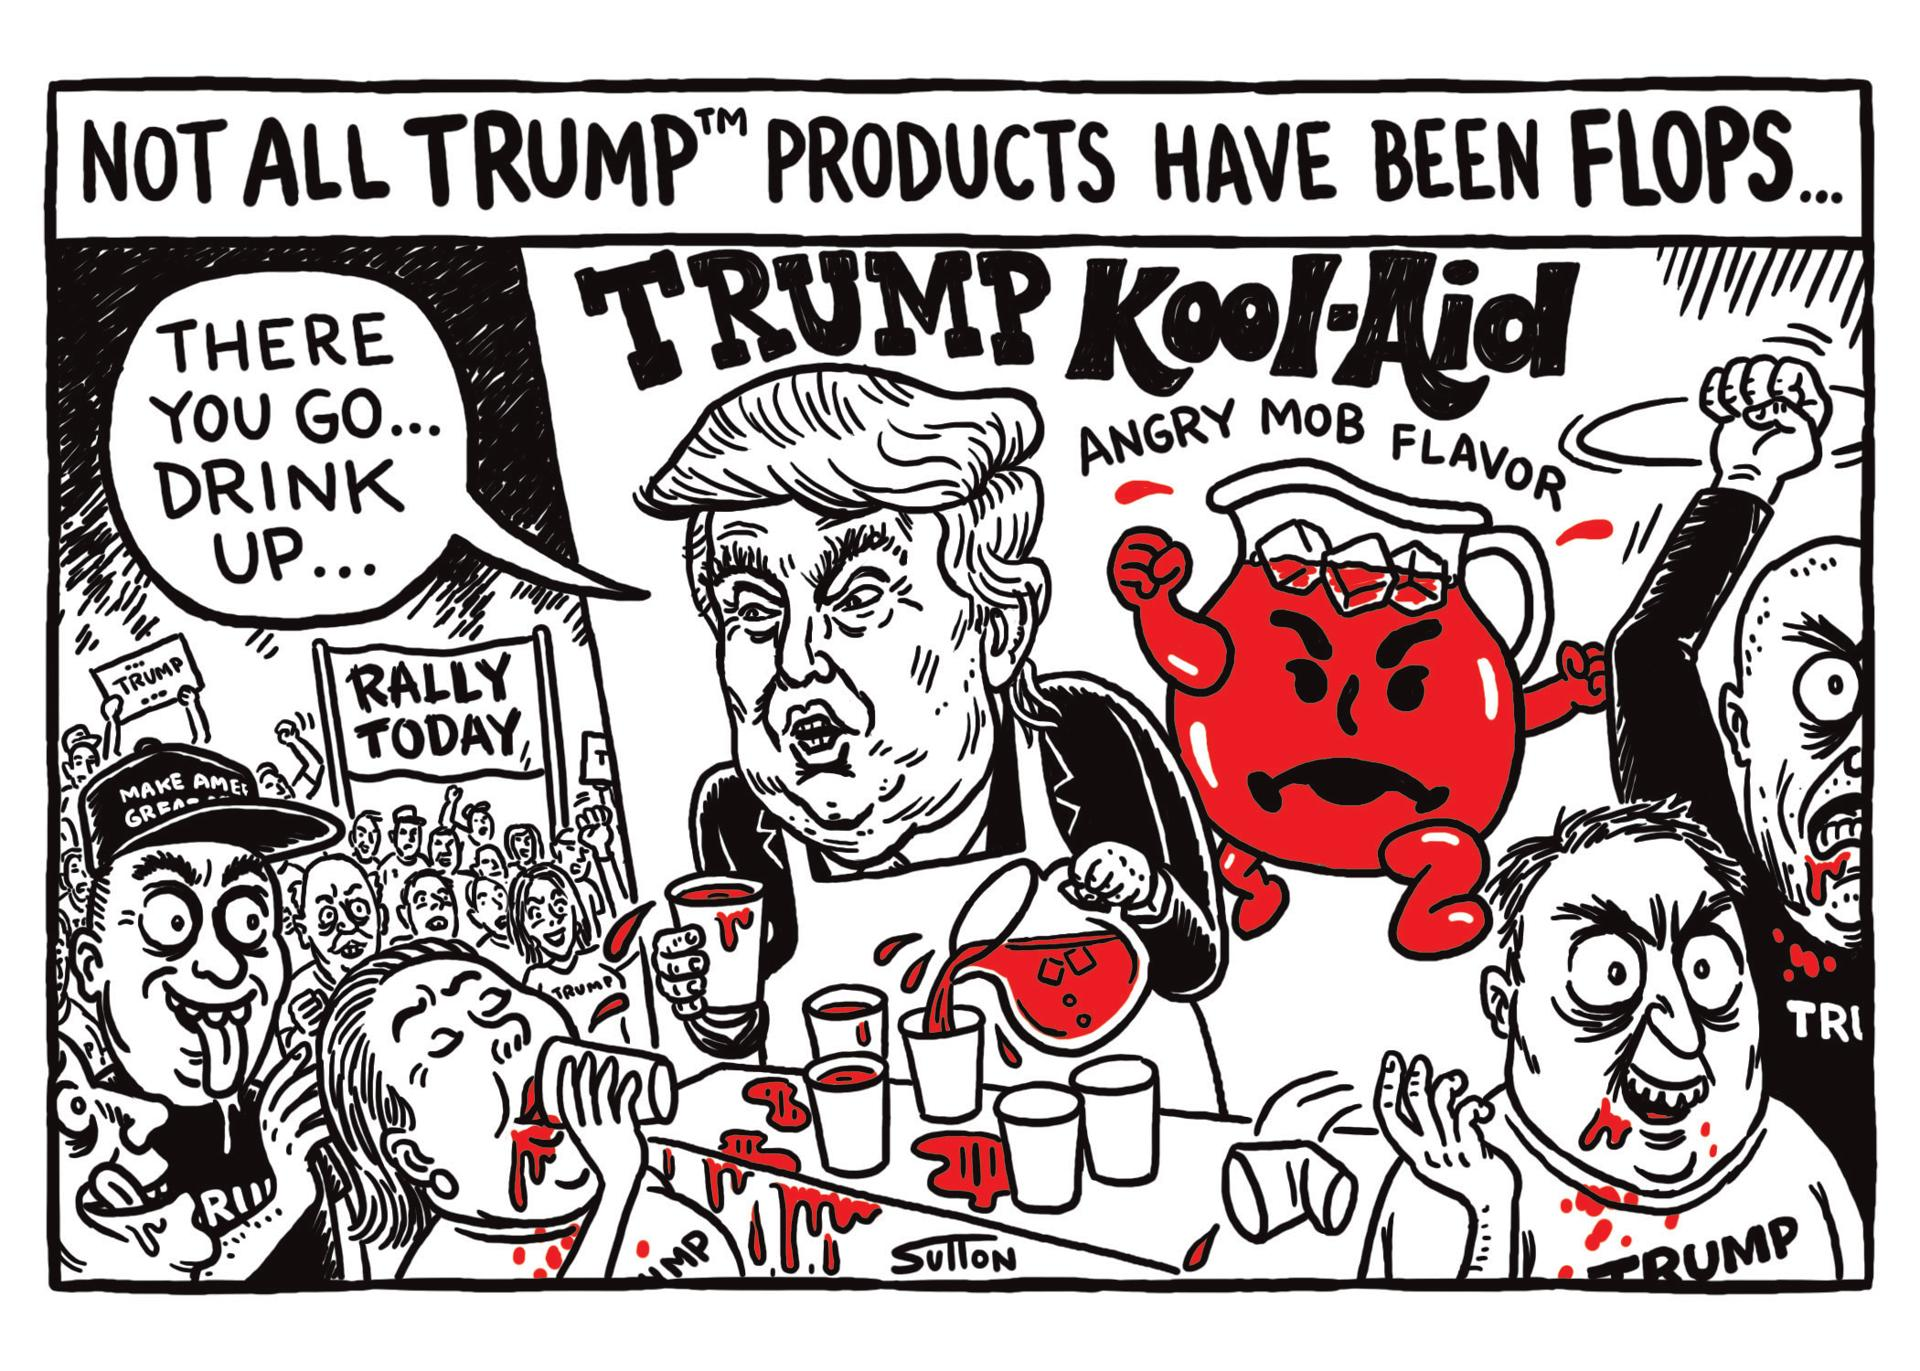 Kraft Foods Denies Rumor Kool Aid Brand Set to Endorse Trump